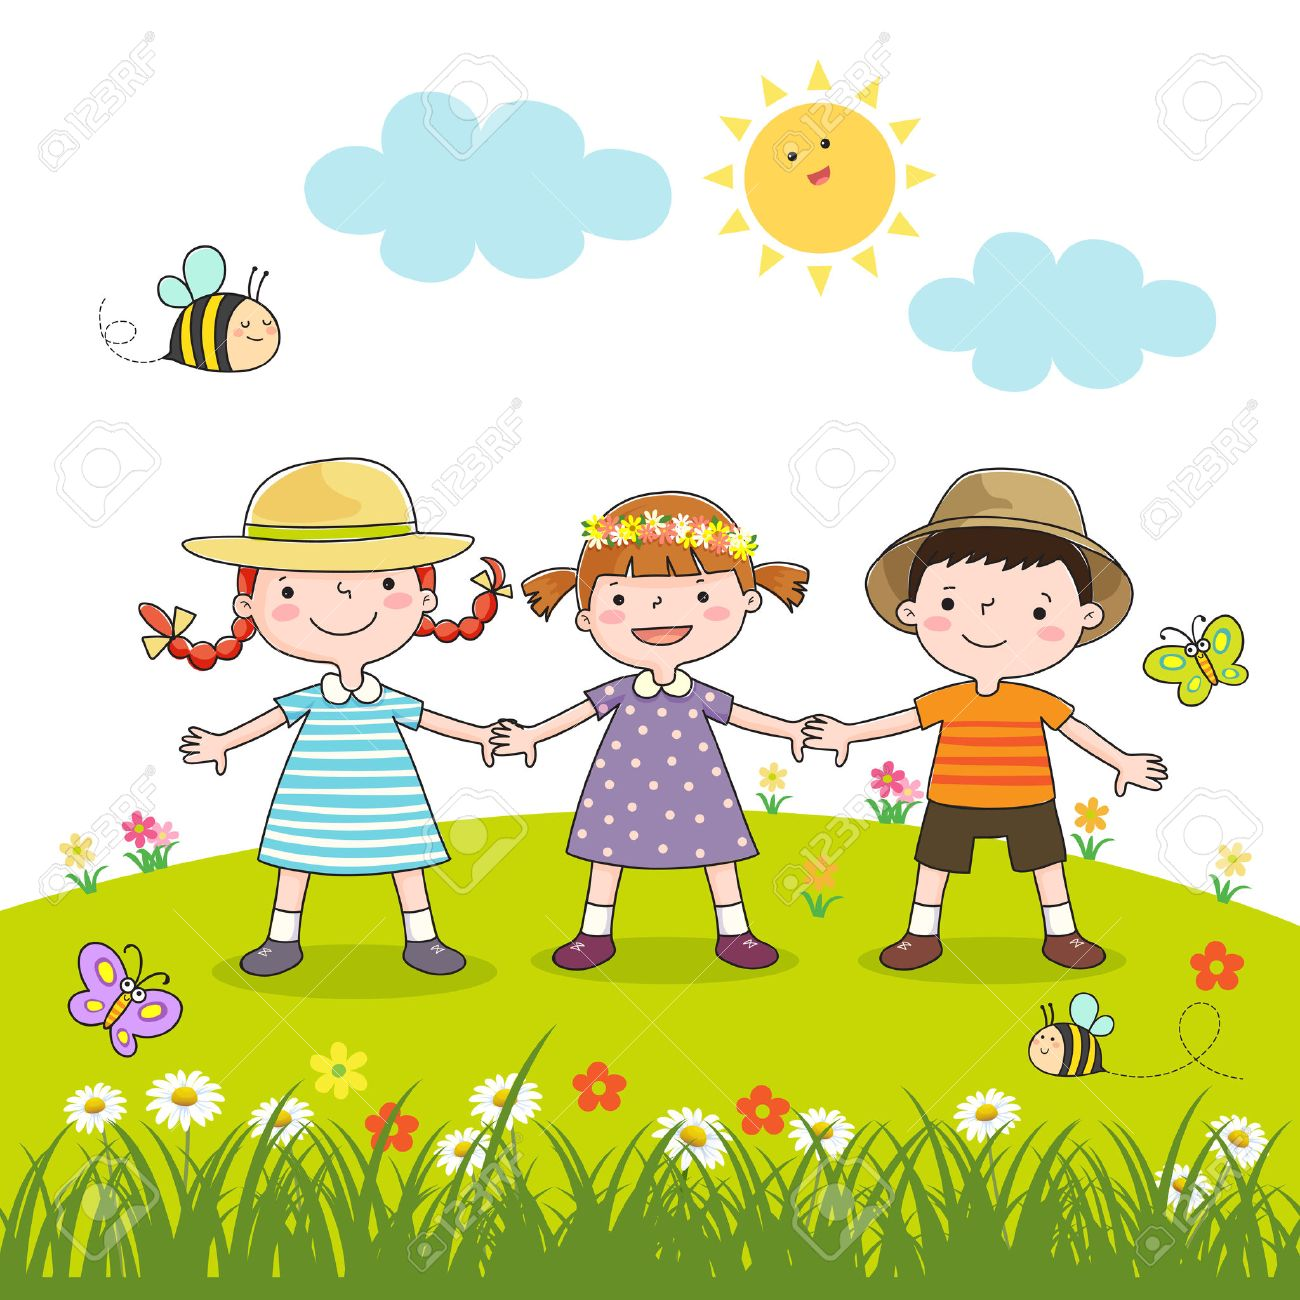 Happy children holding hands on blossom meadow - 53195119